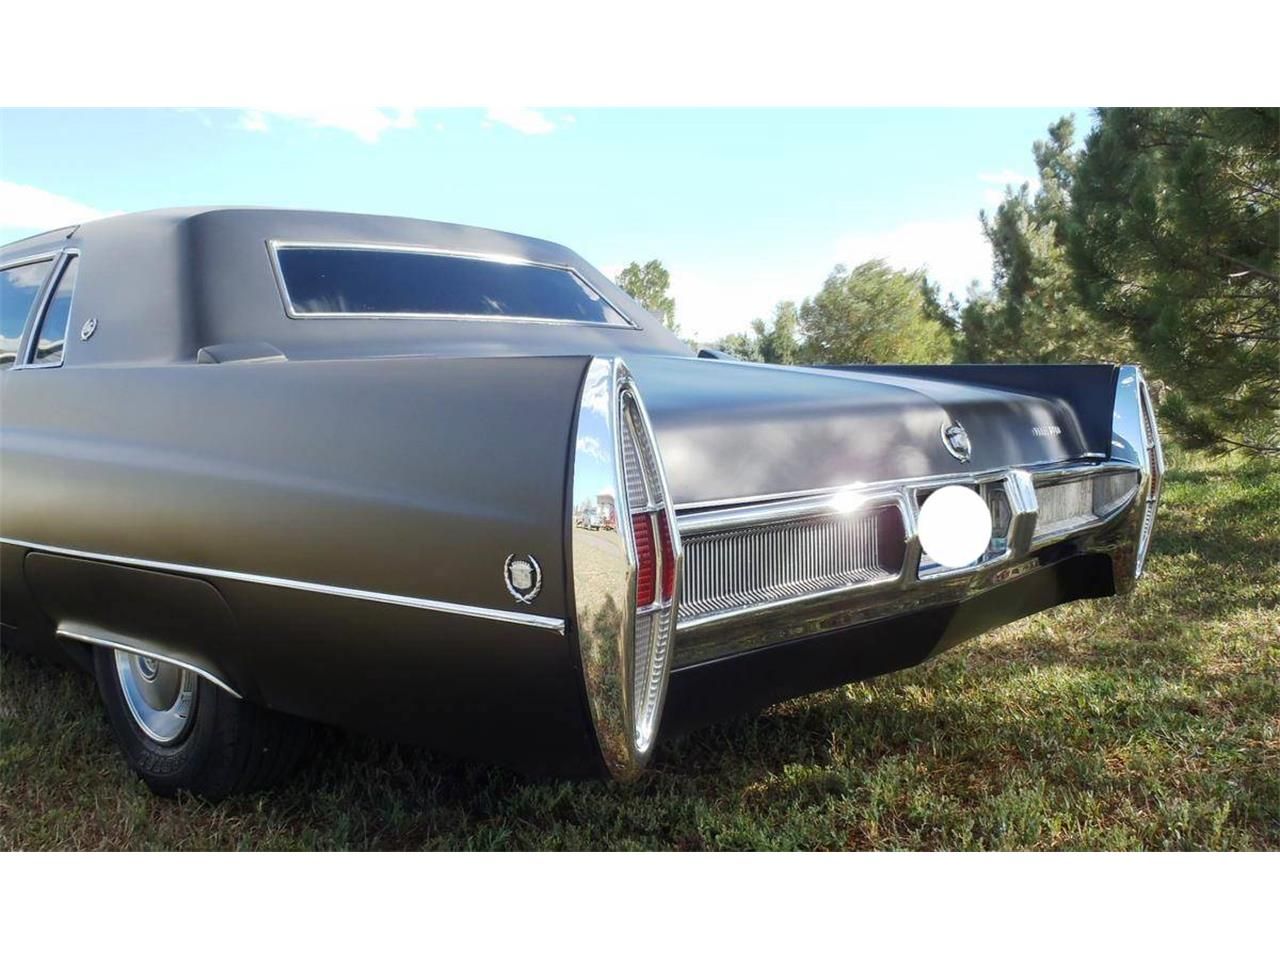 Large Picture of Classic 1967 Fleetwood Limousine - $13,000.00 Offered by a Private Seller - OD55